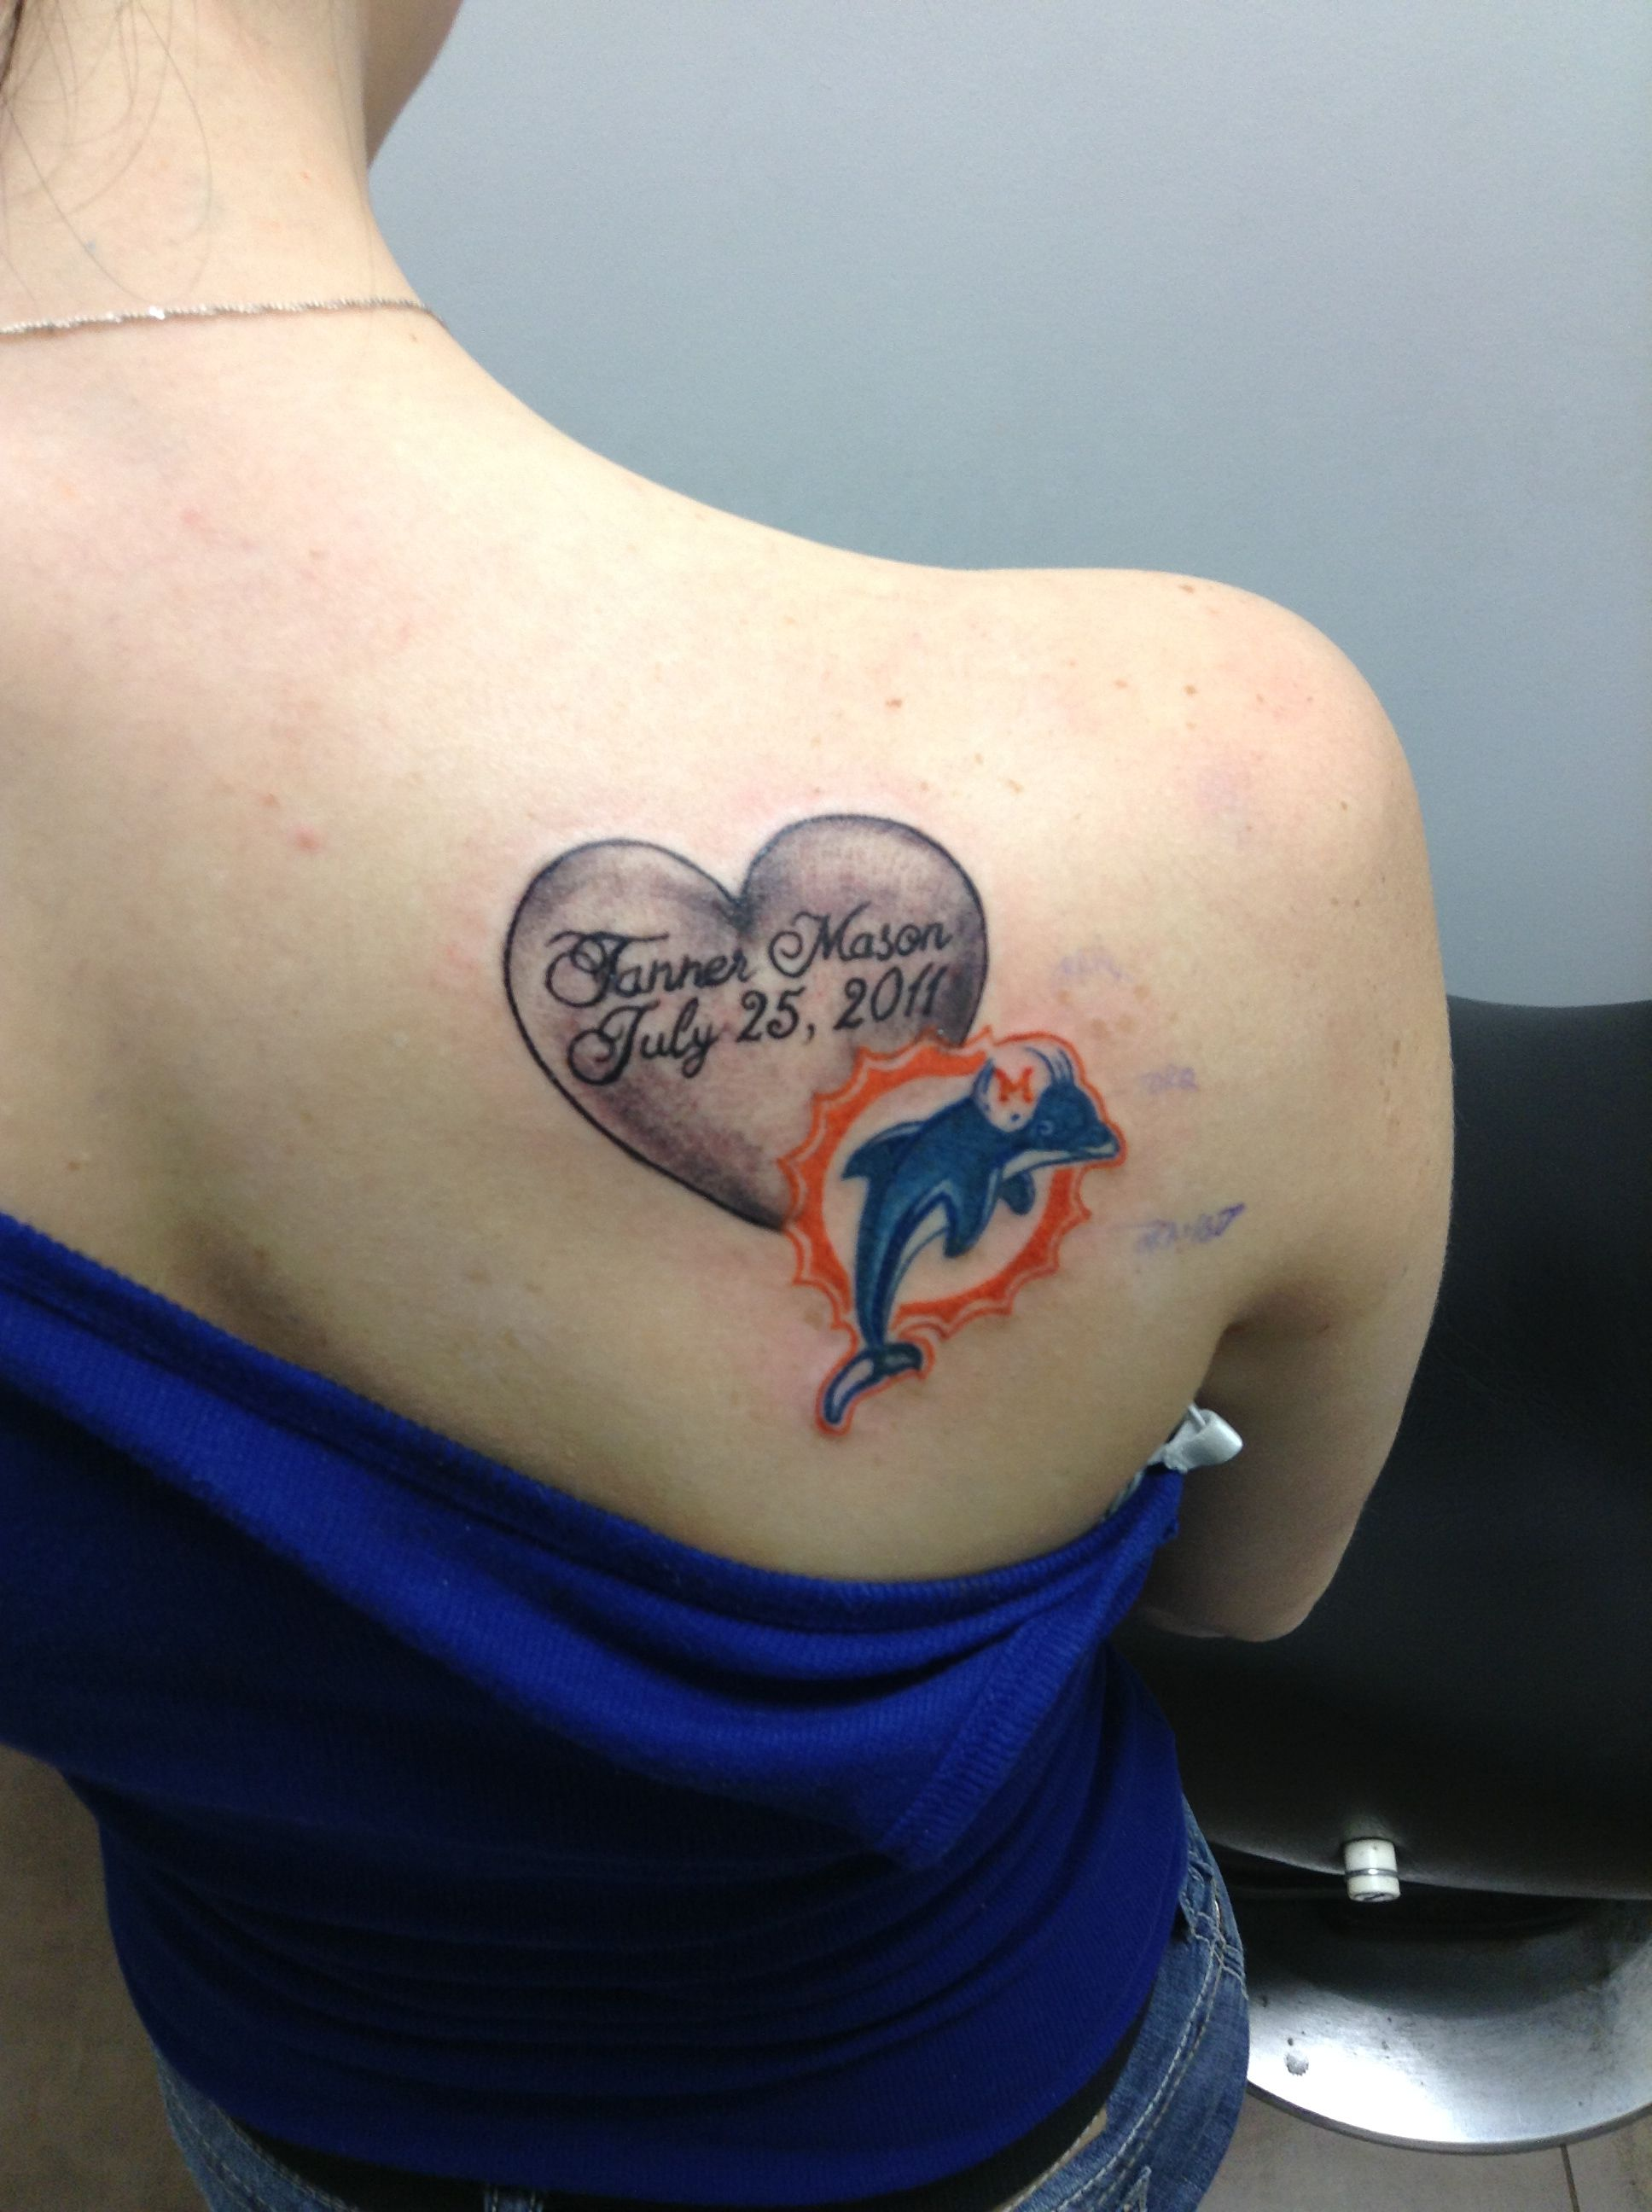 Miami Dolphin Tattoo : miami, dolphin, tattoo, Tattoo, Miami, Dolphins, Signifies, First, Family, Together,, Where, Dolphins,